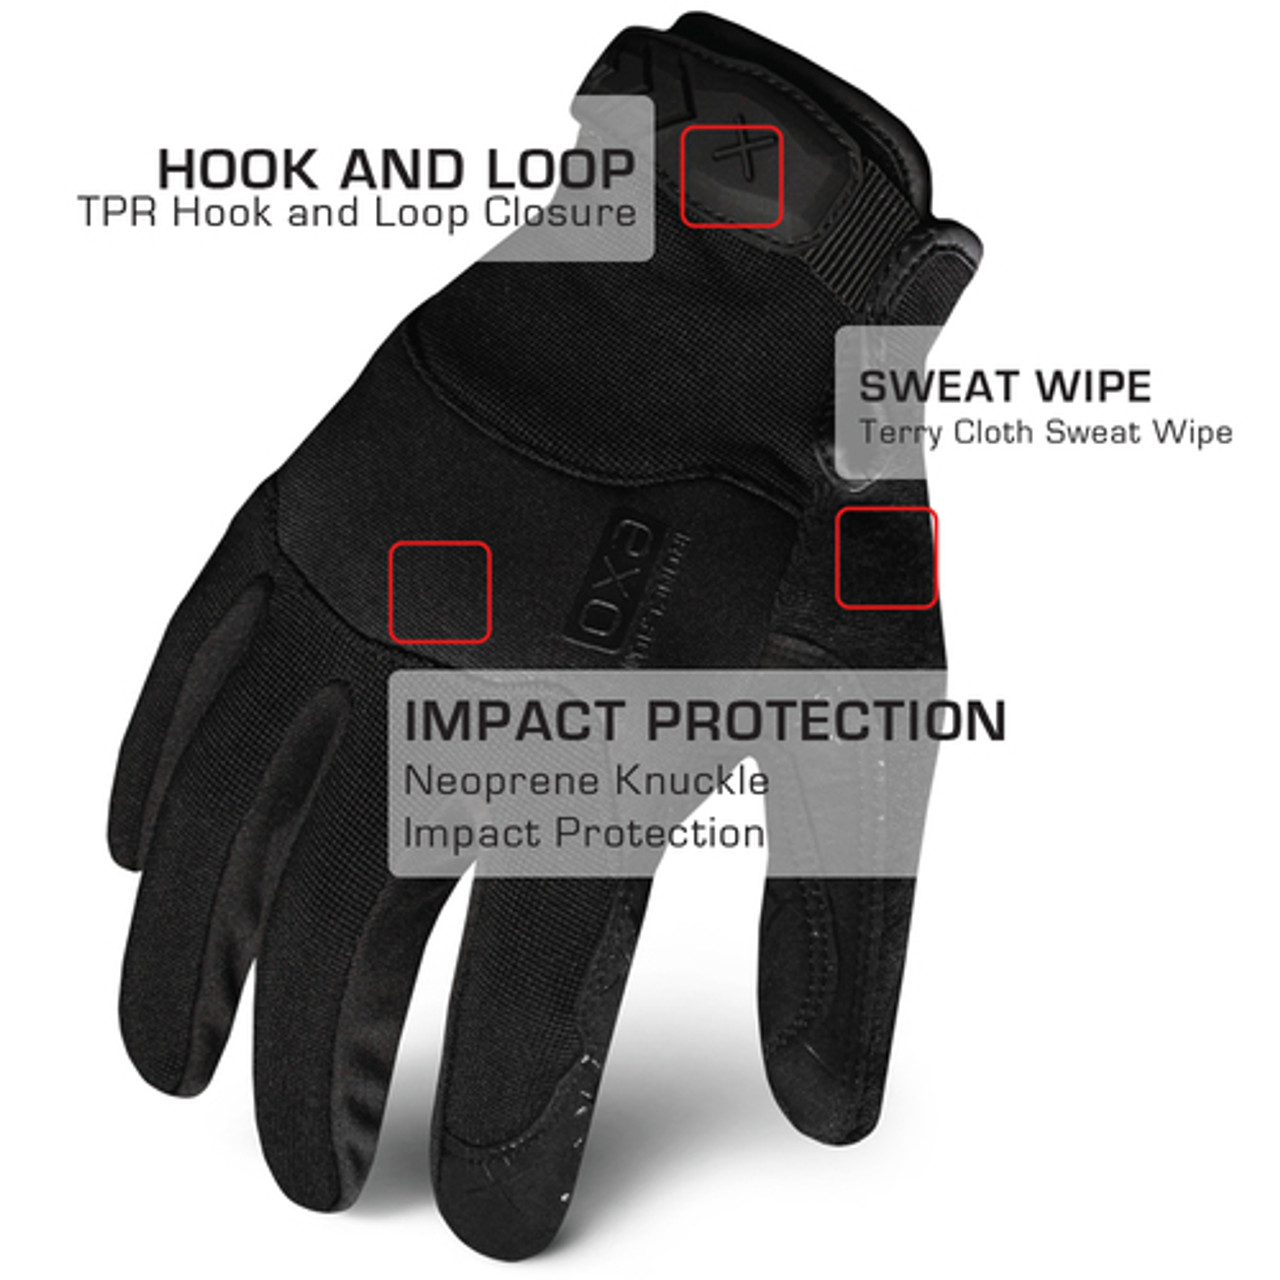 IronClad EXO Tactical Stealth Pro Women's Glove with Suede Cuff Puller